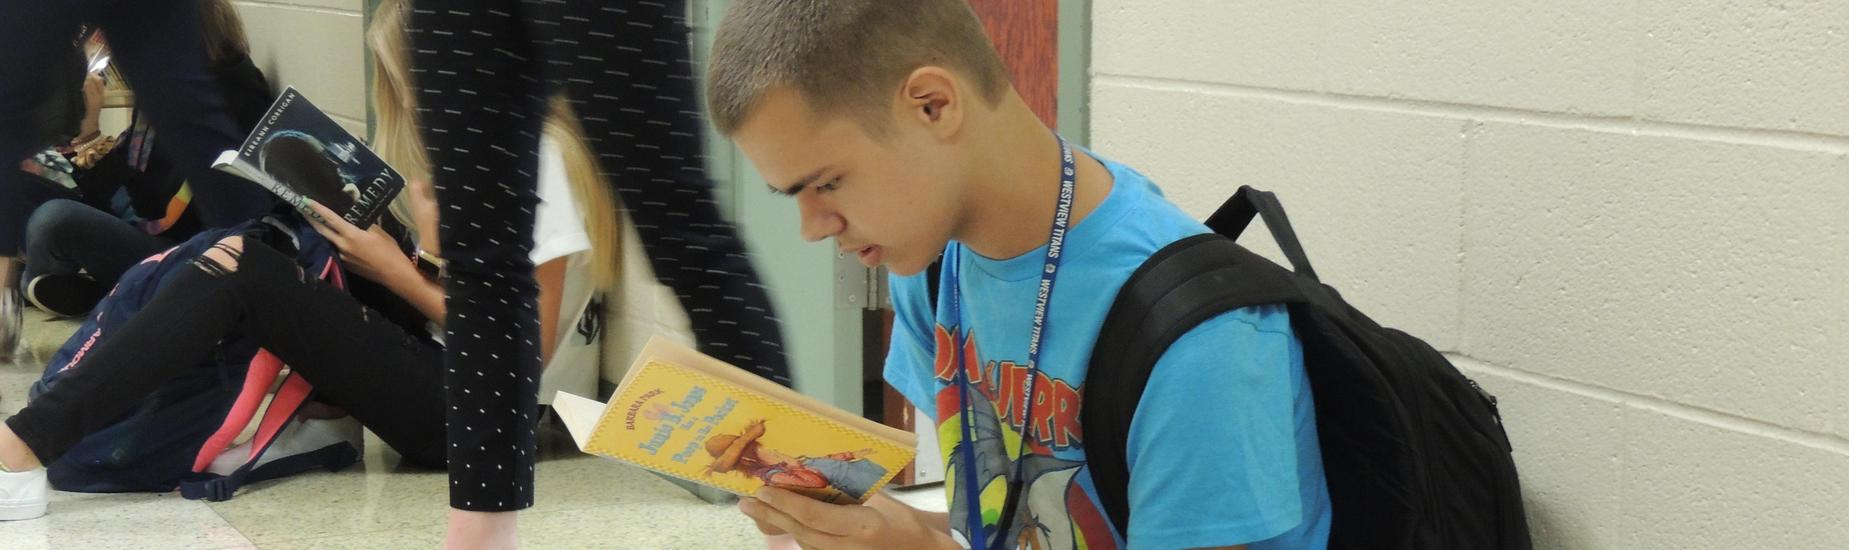 8th grade student reading in the hallway